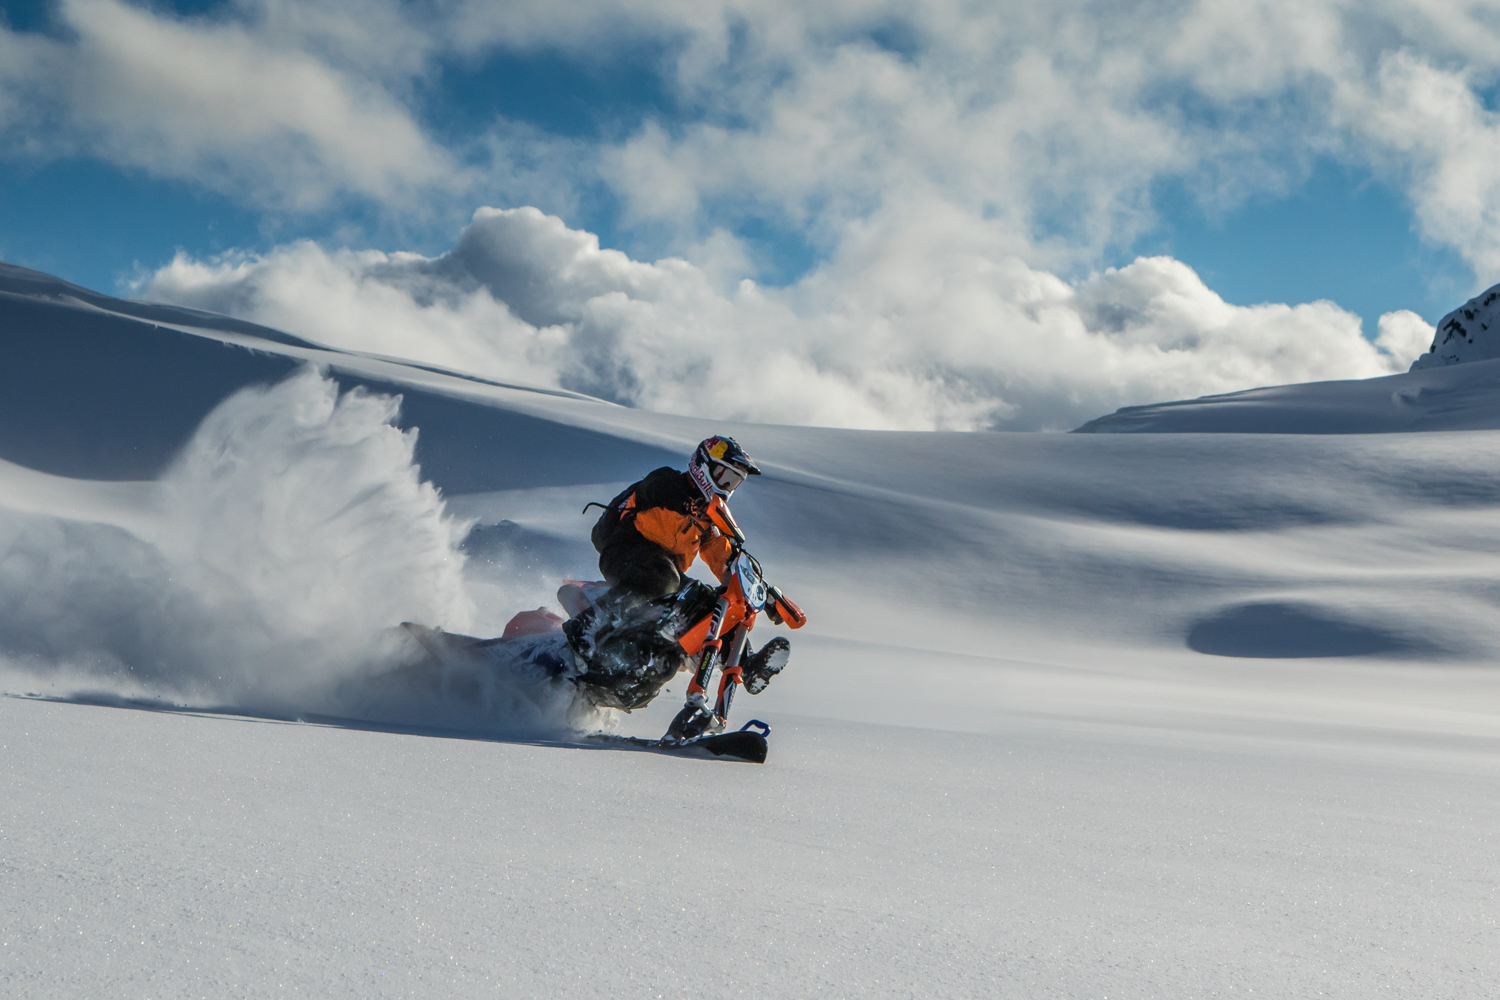 Snow biking - the awesome way to ride in winter